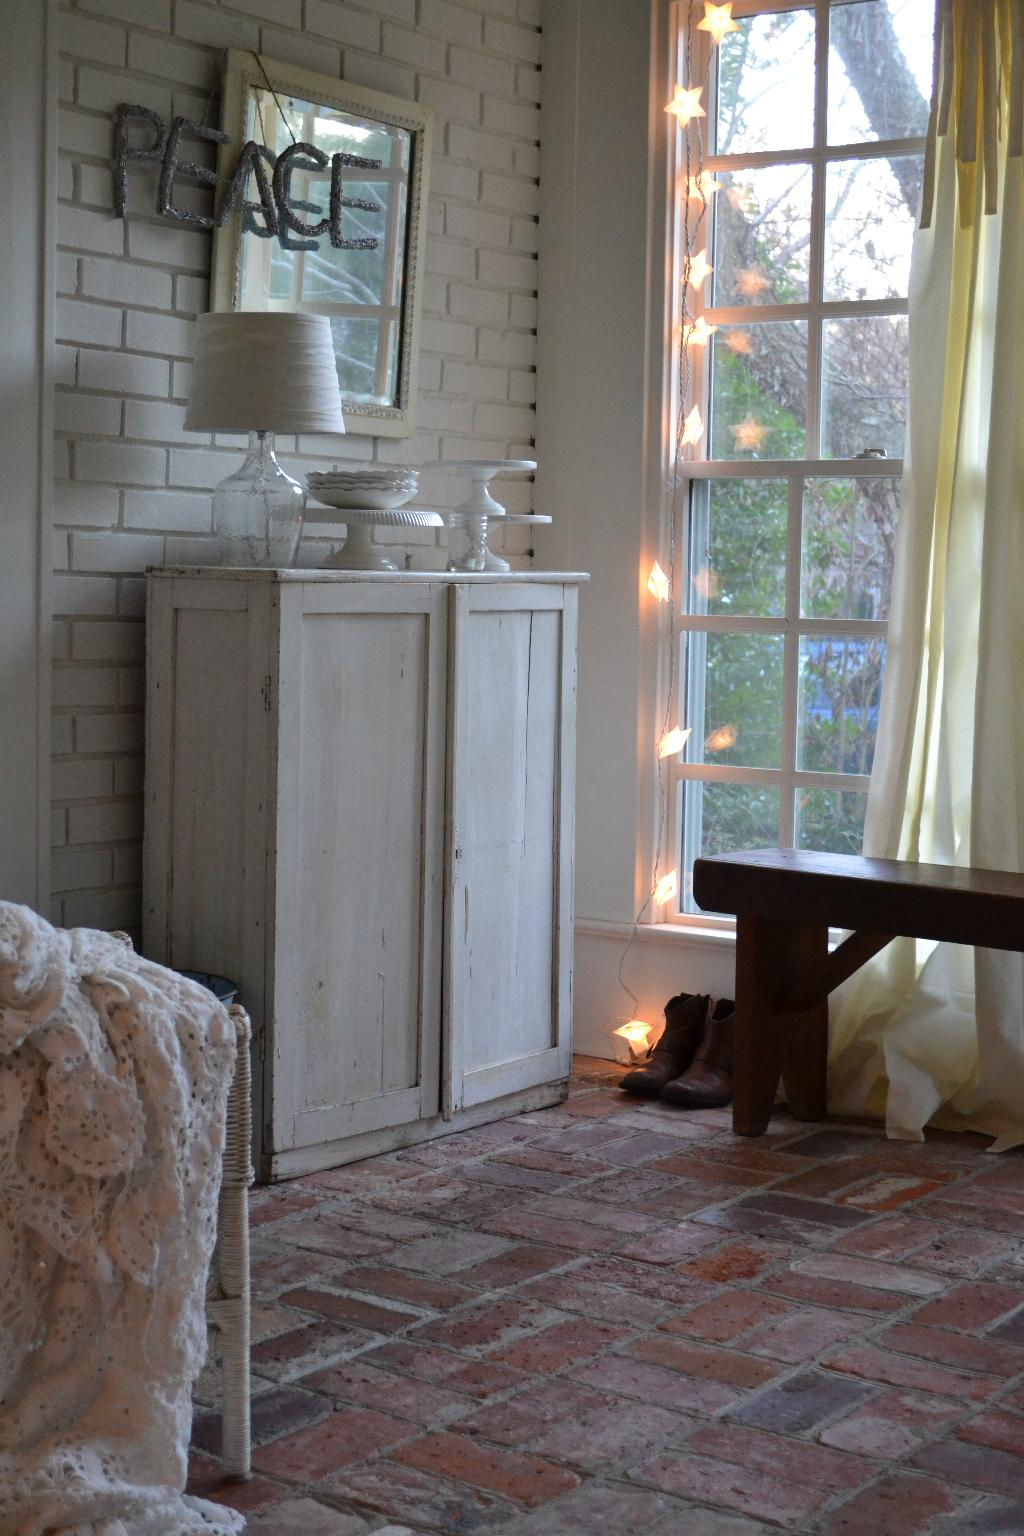 Cottage Fix - sun porch with whites and twinkly star lights